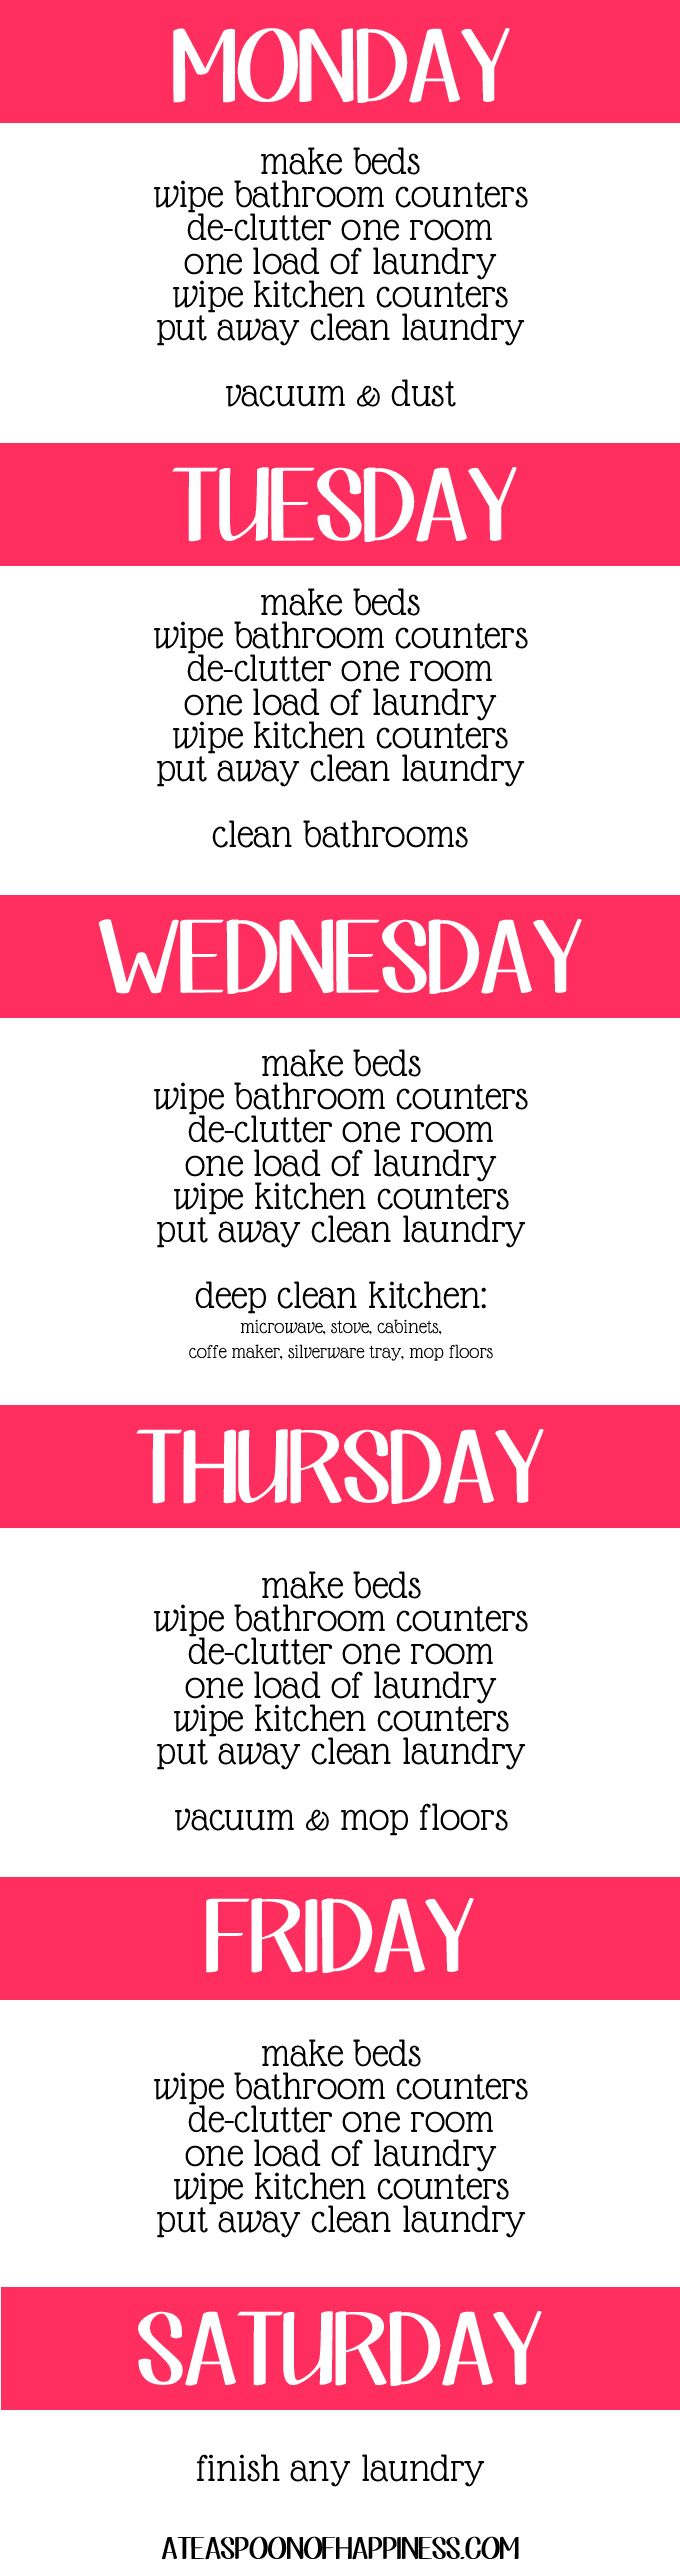 Daily Cleaning Schedule - The Pinterest Challenge Part 2 | A Teaspoon of Happiness